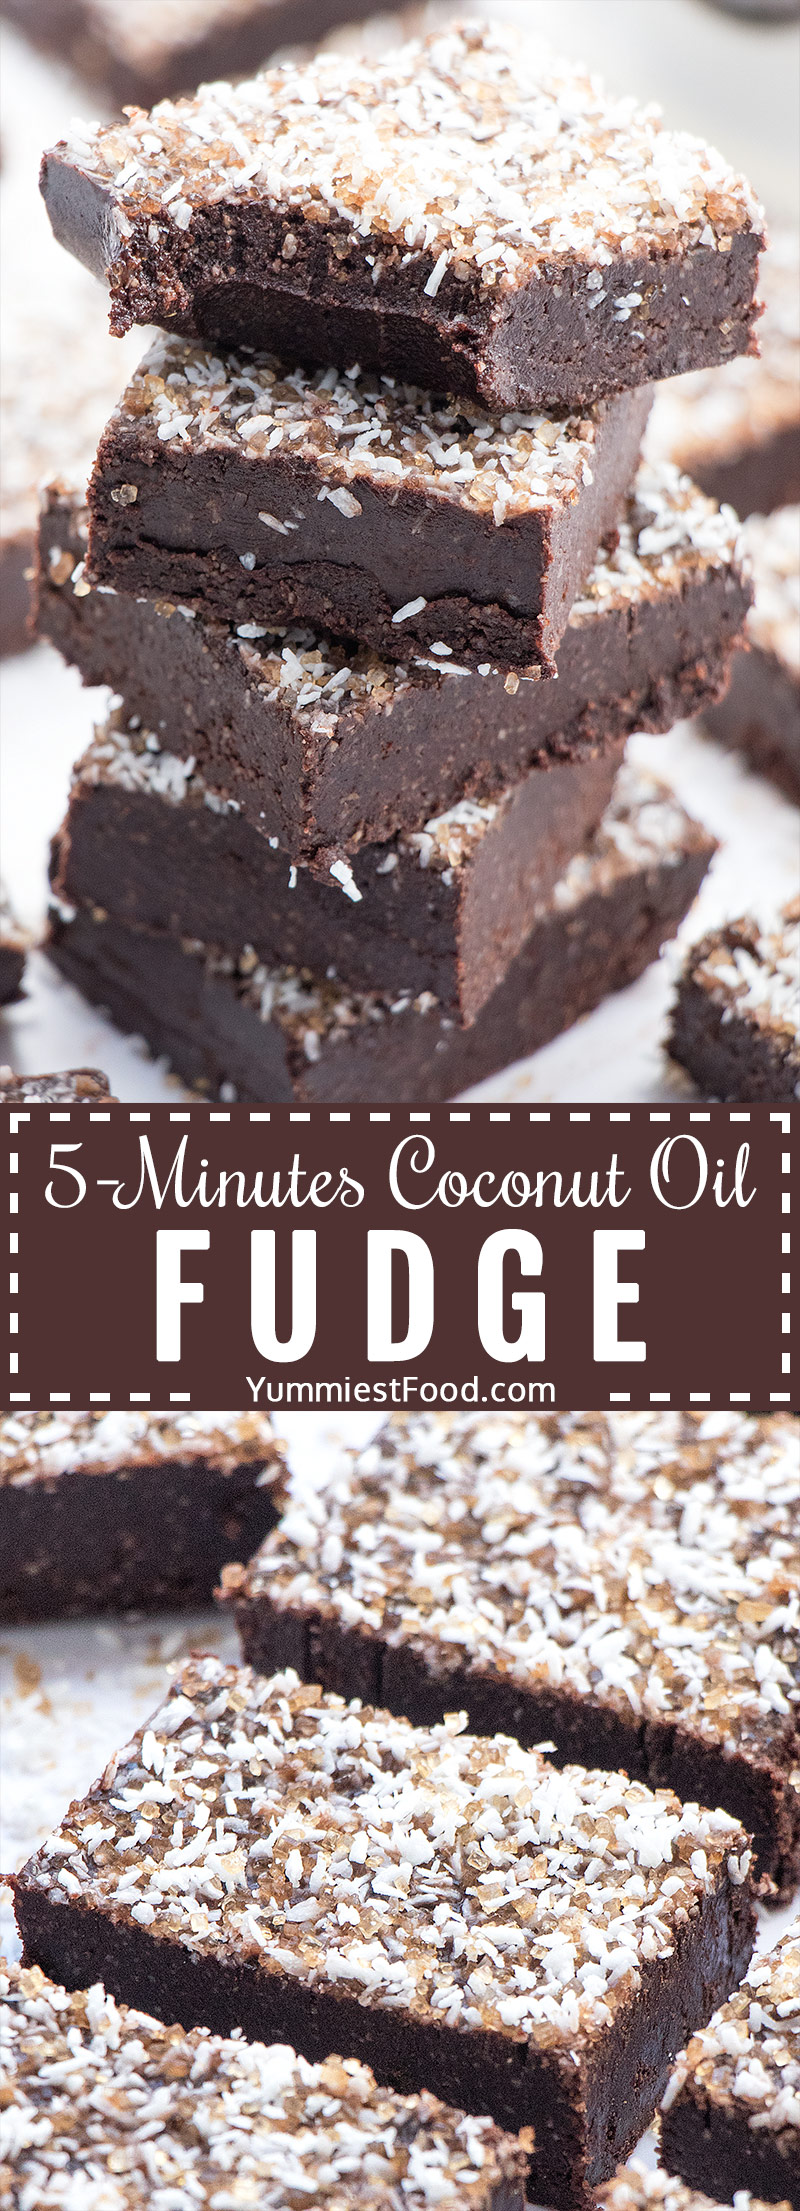 Coconut Oil Fudge - paleo, dairy-free and gluten-free delicious dessert